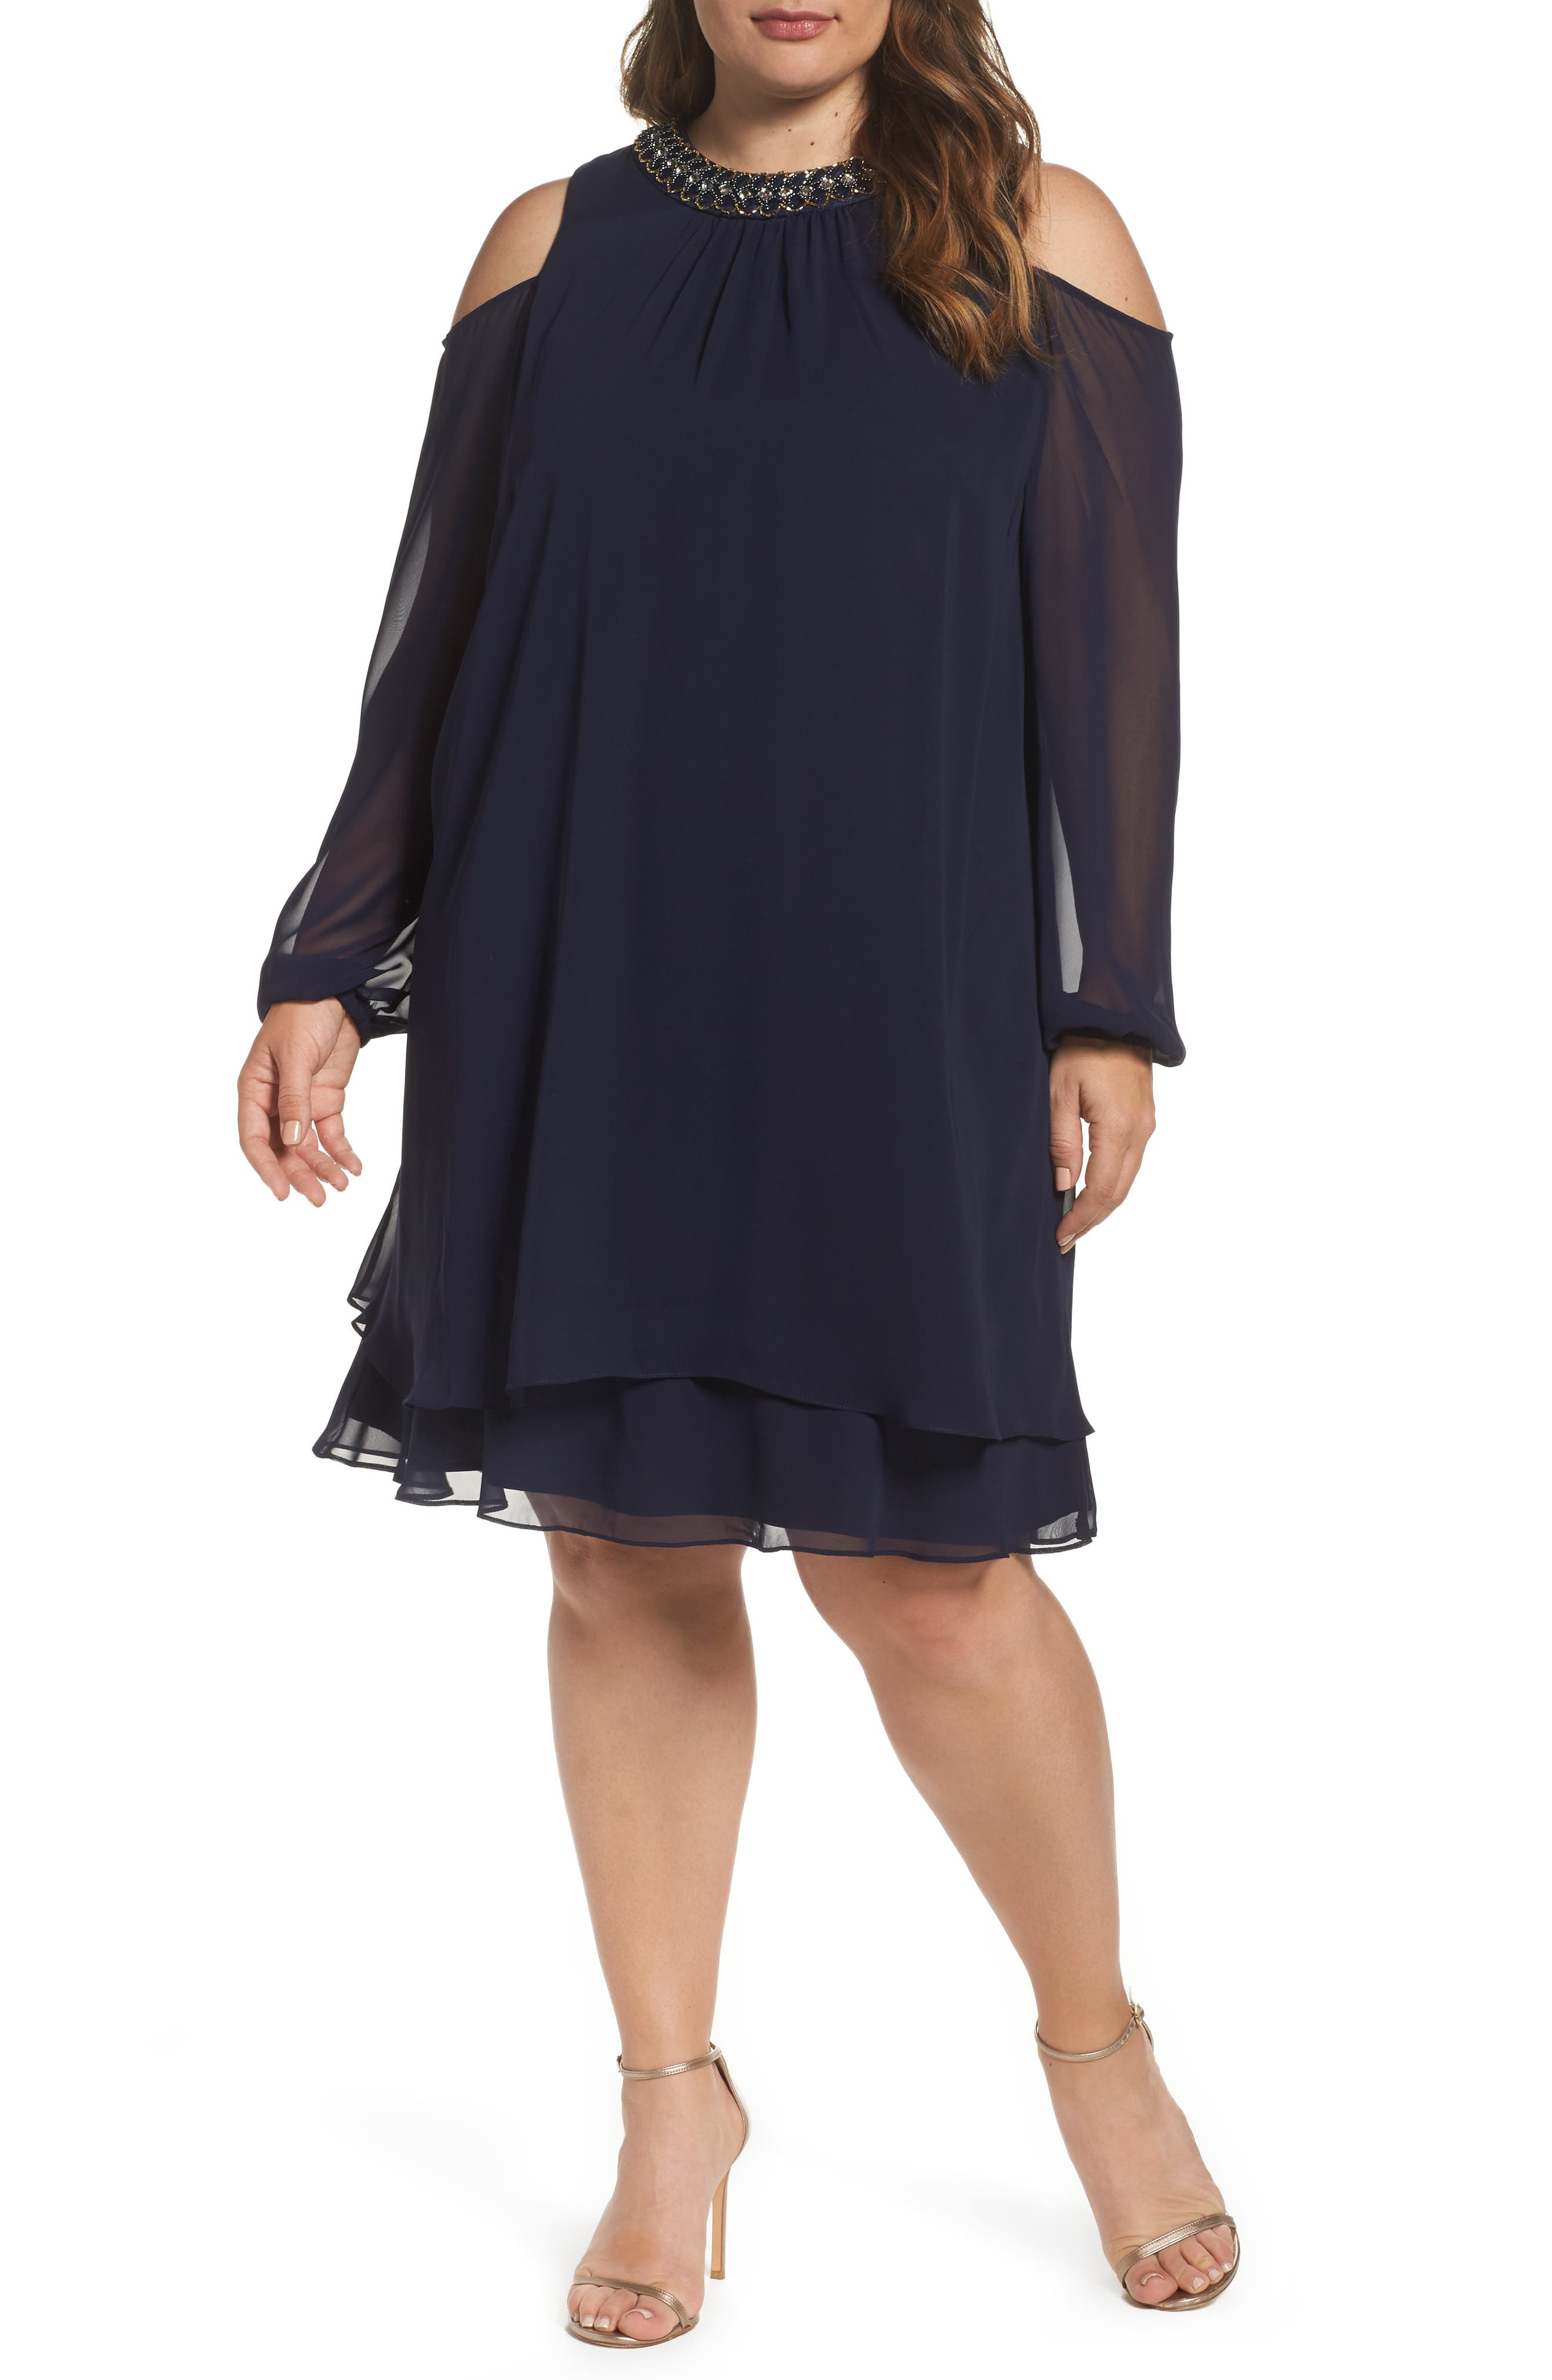 Main Image - Xscape Embellished Cold Shoulder Shift Dress (Plus Size)